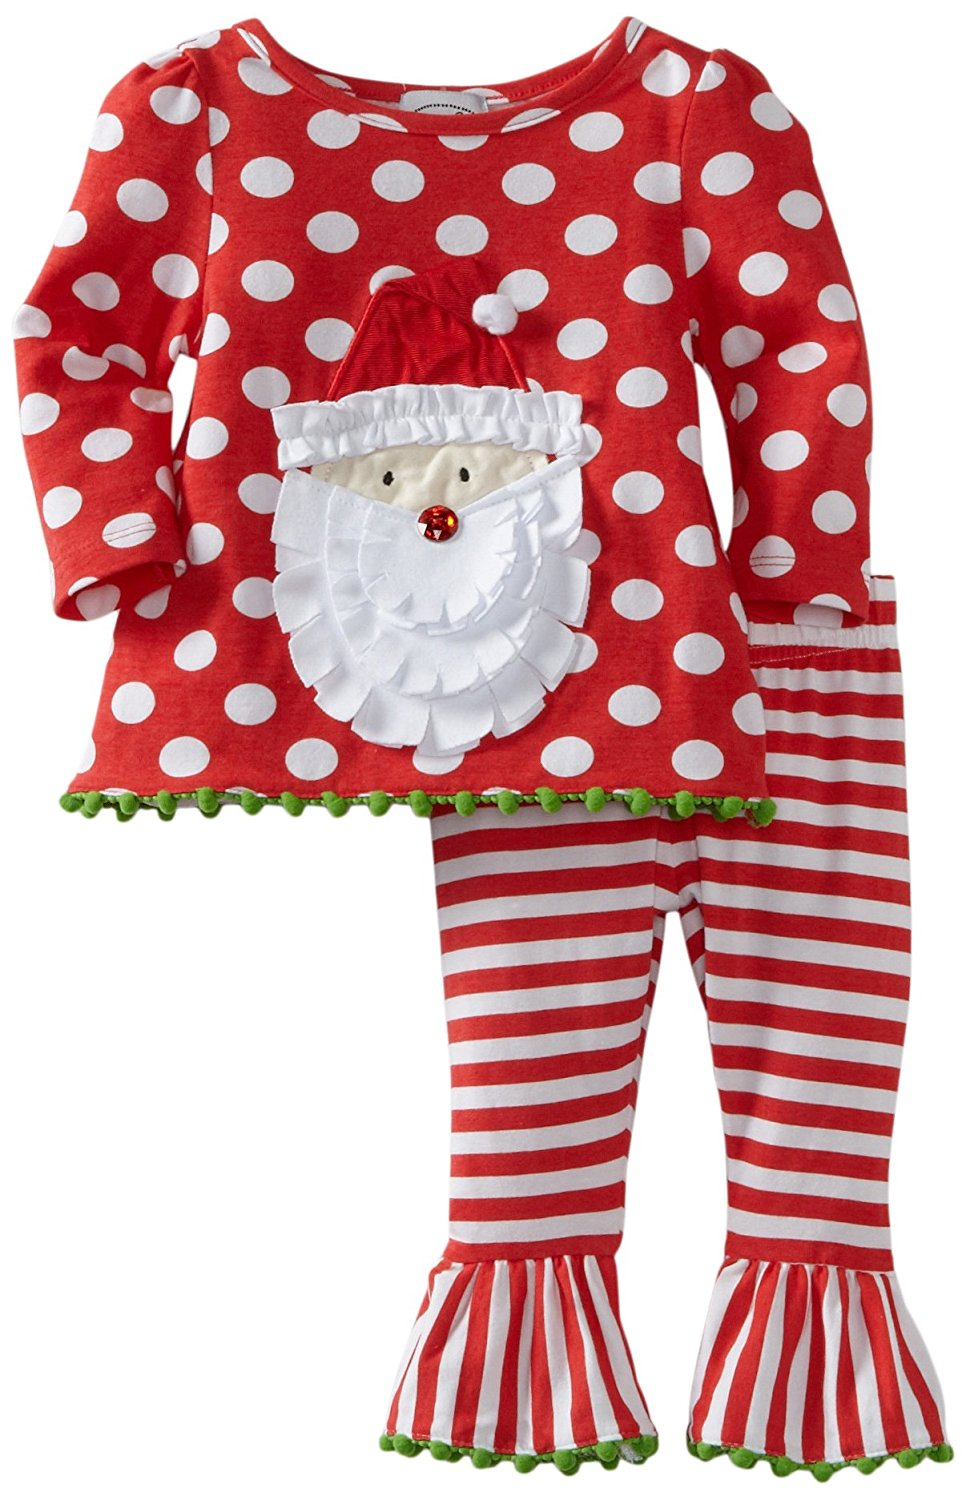 Kids Christmas Pajamas | All the Best Styles for 2013